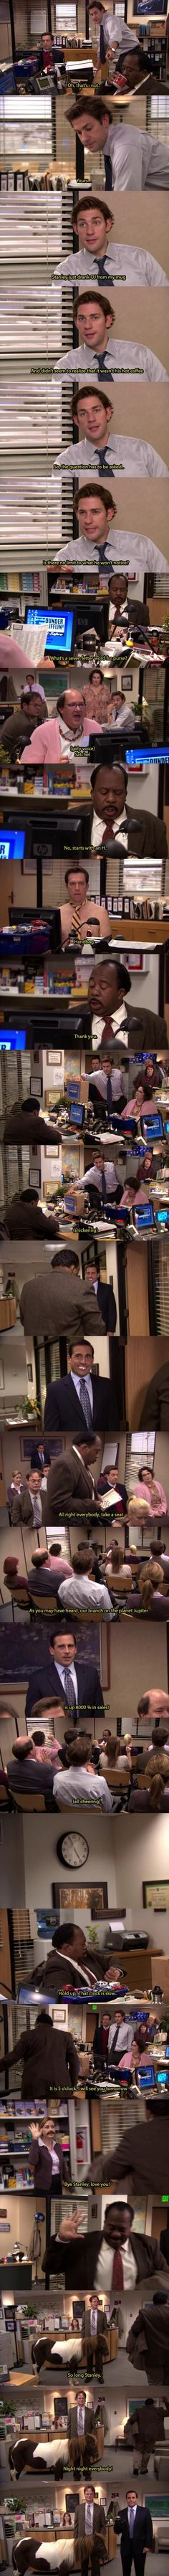 favorite opening to The Office.